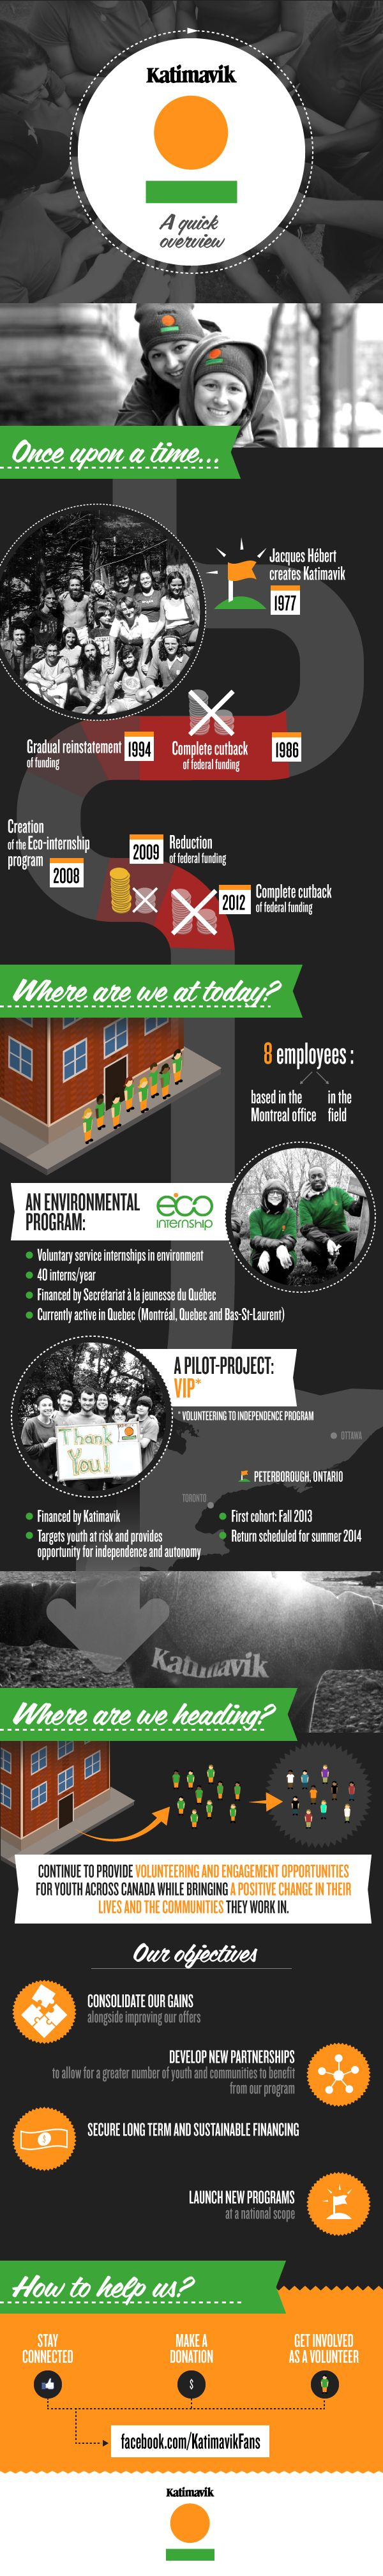 A quick overview of Katimavik (aka the workd's most beneficial program ever!) situation | Katimavik